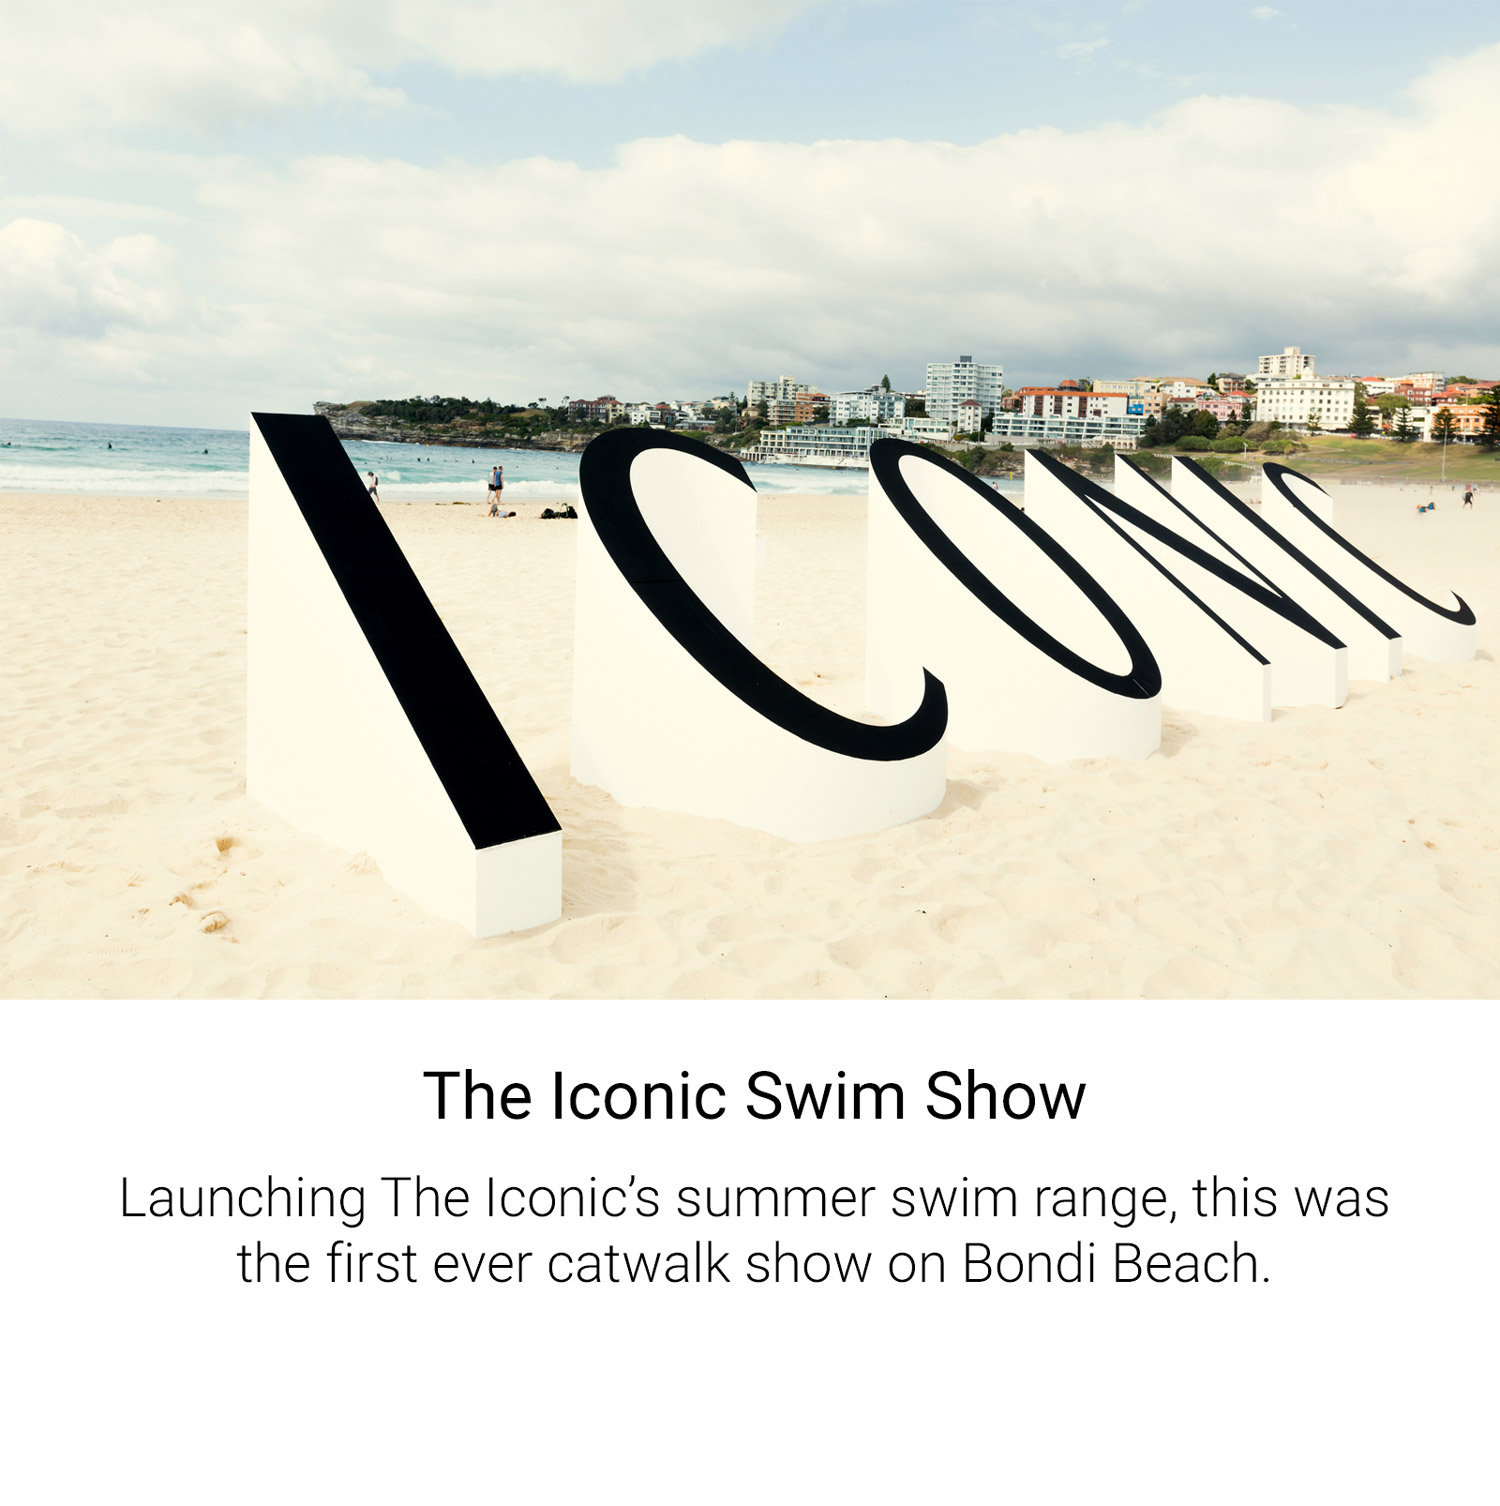 The Iconic Swim Show